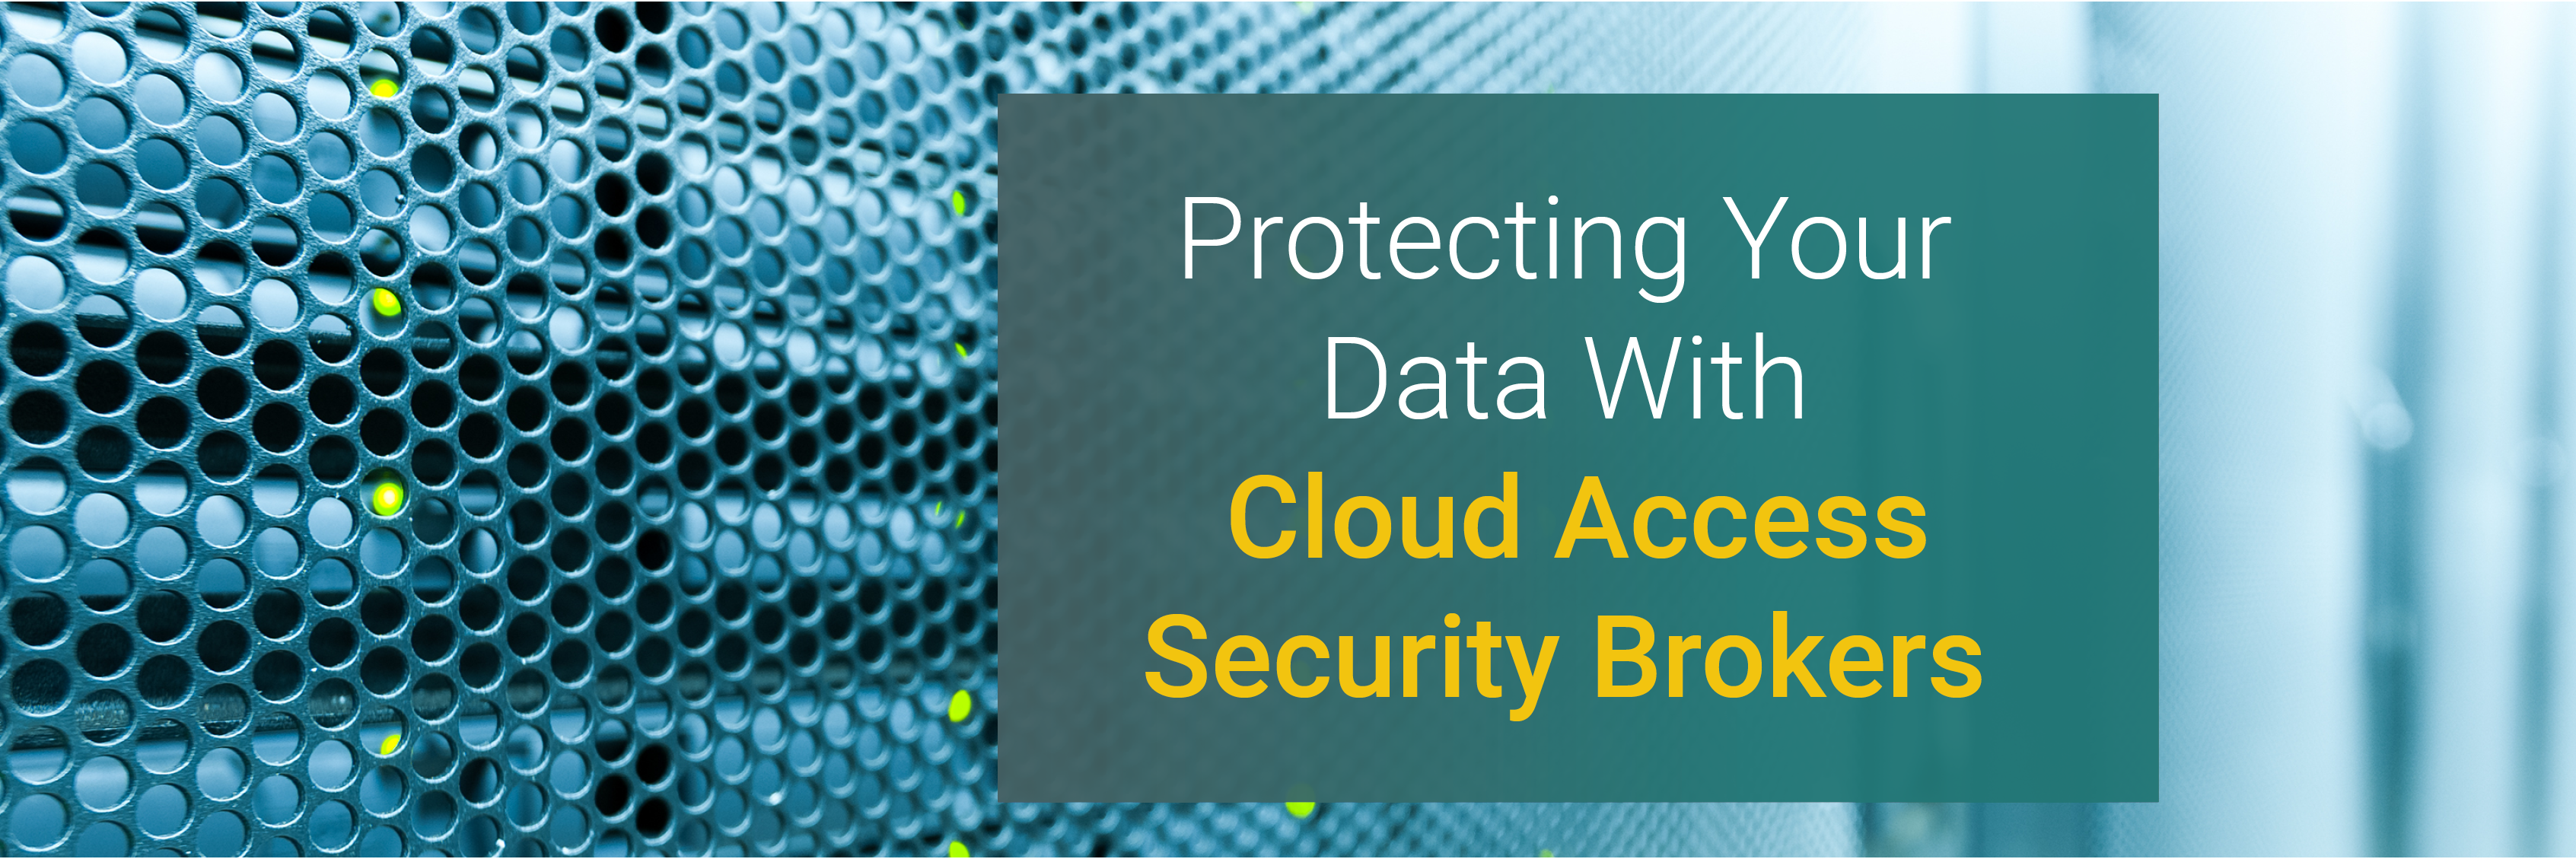 Protecting Your Data With Secure Cloud Access